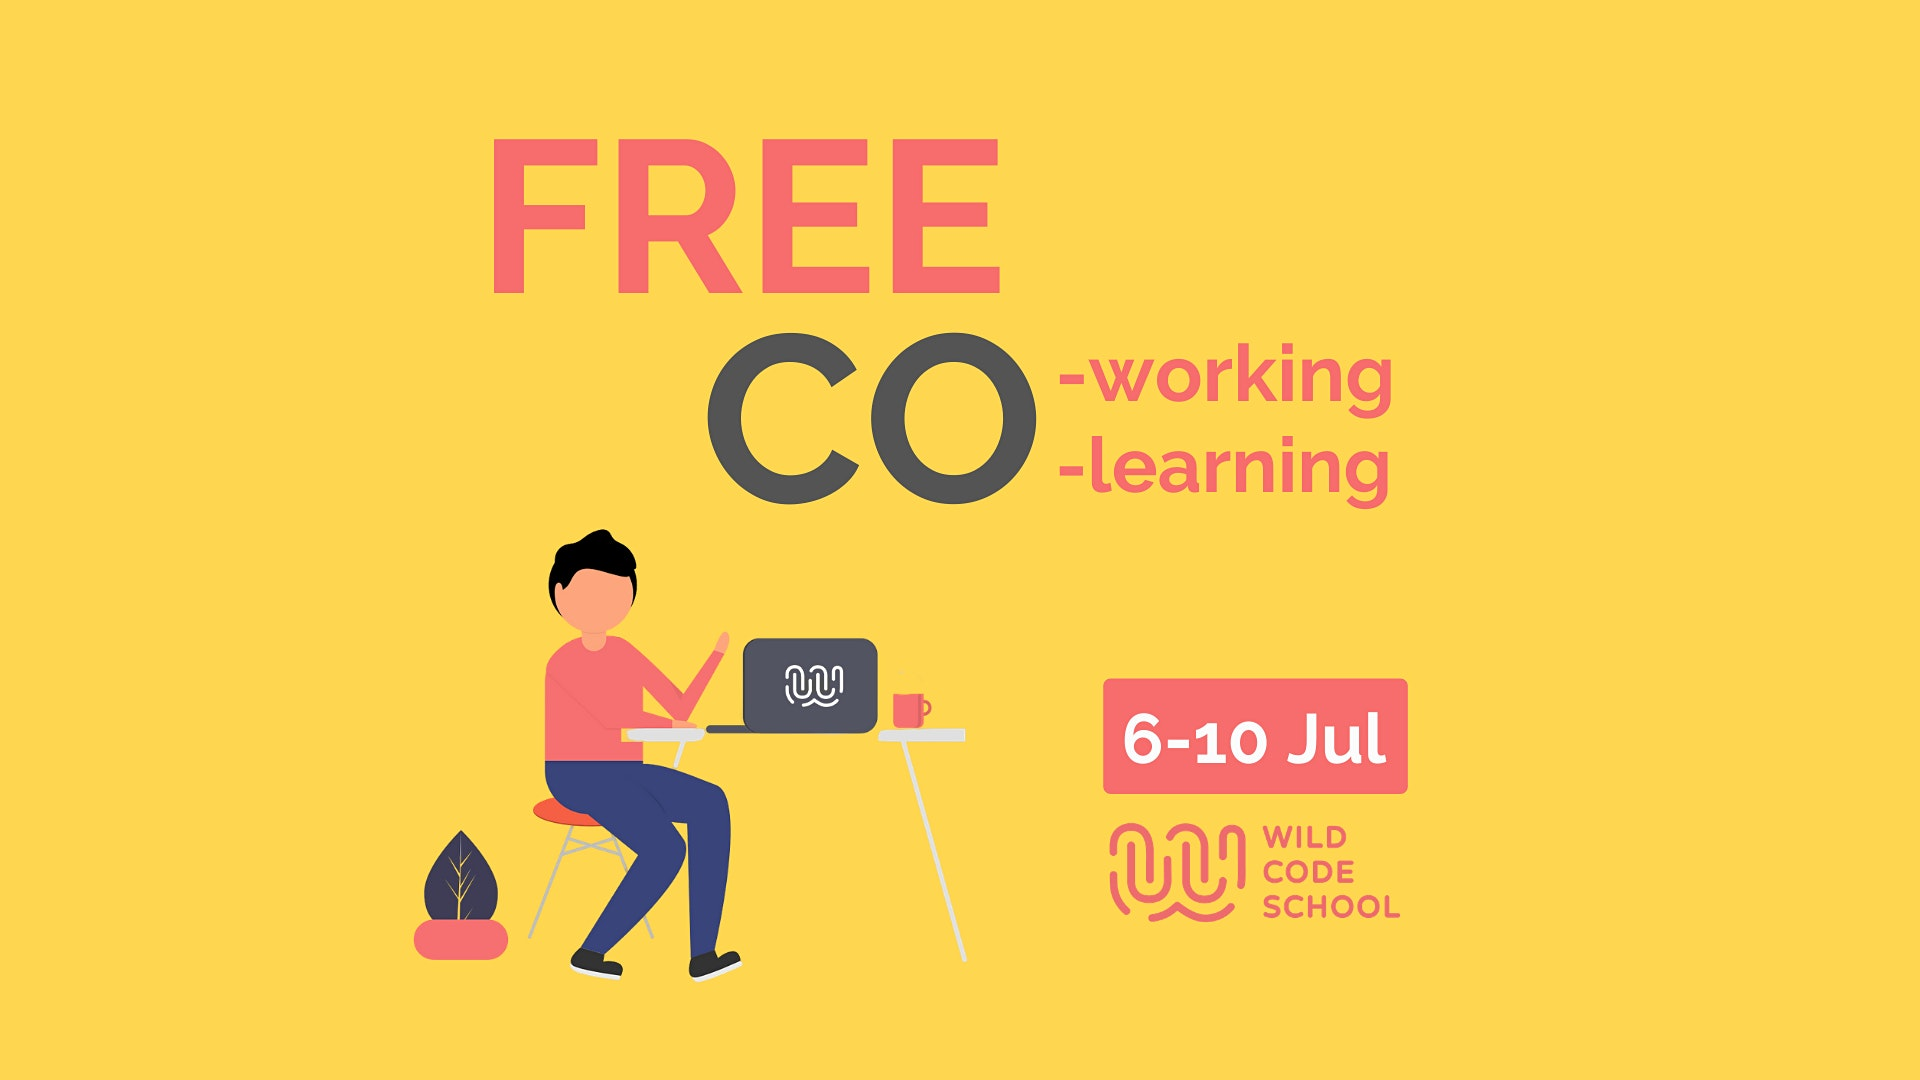 Free co-working / co-learning